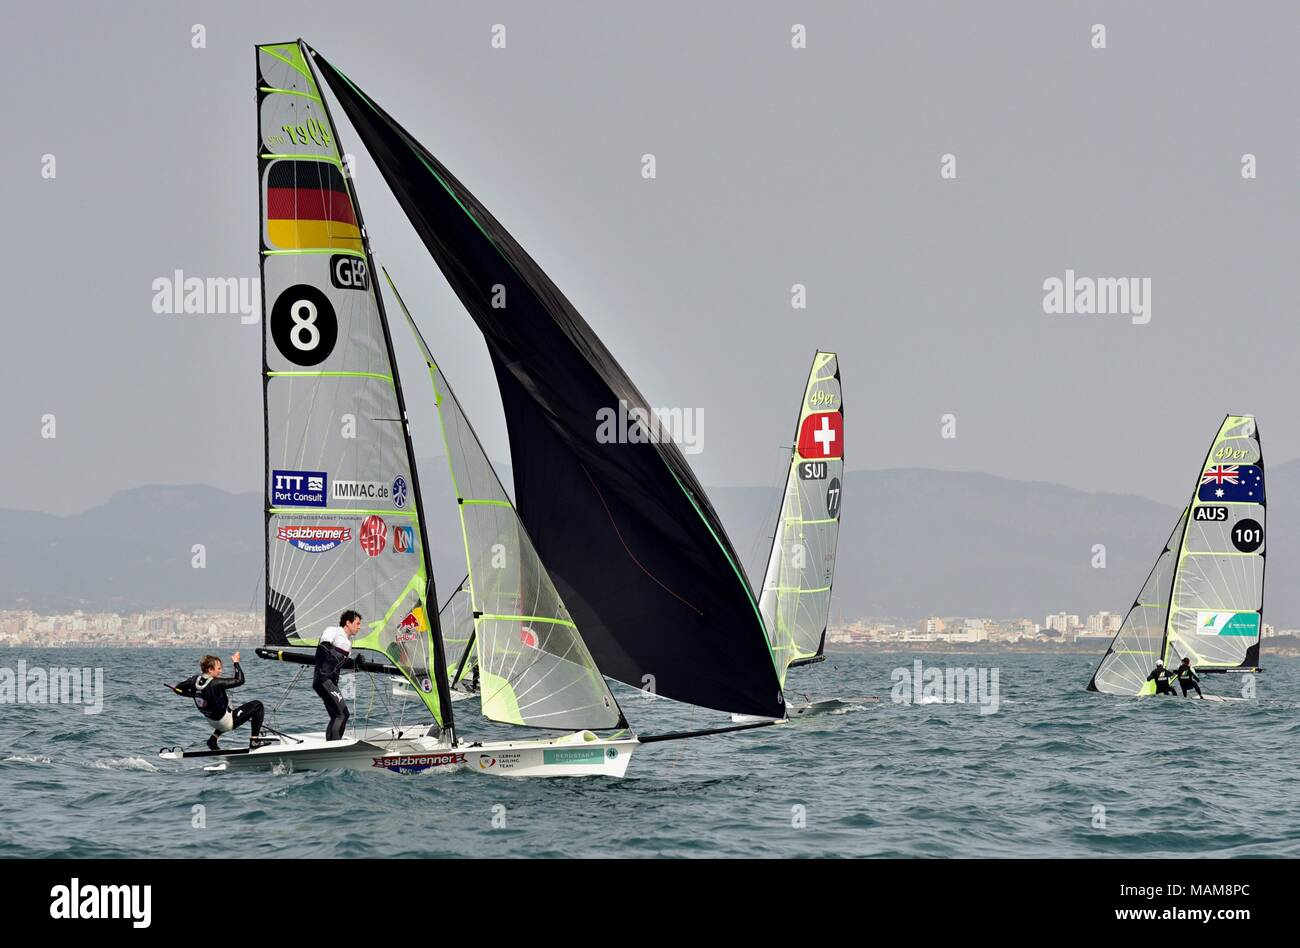 German yatchsmen Justus Schmidt and Thomas Plossel (L) compete in the 49er category during the 49th Princess Sofia Sailing Trophy, celebrated at Palma's Bay in Majorca, Spain, 03 April 2018. EFE/Atienza - Stock Image